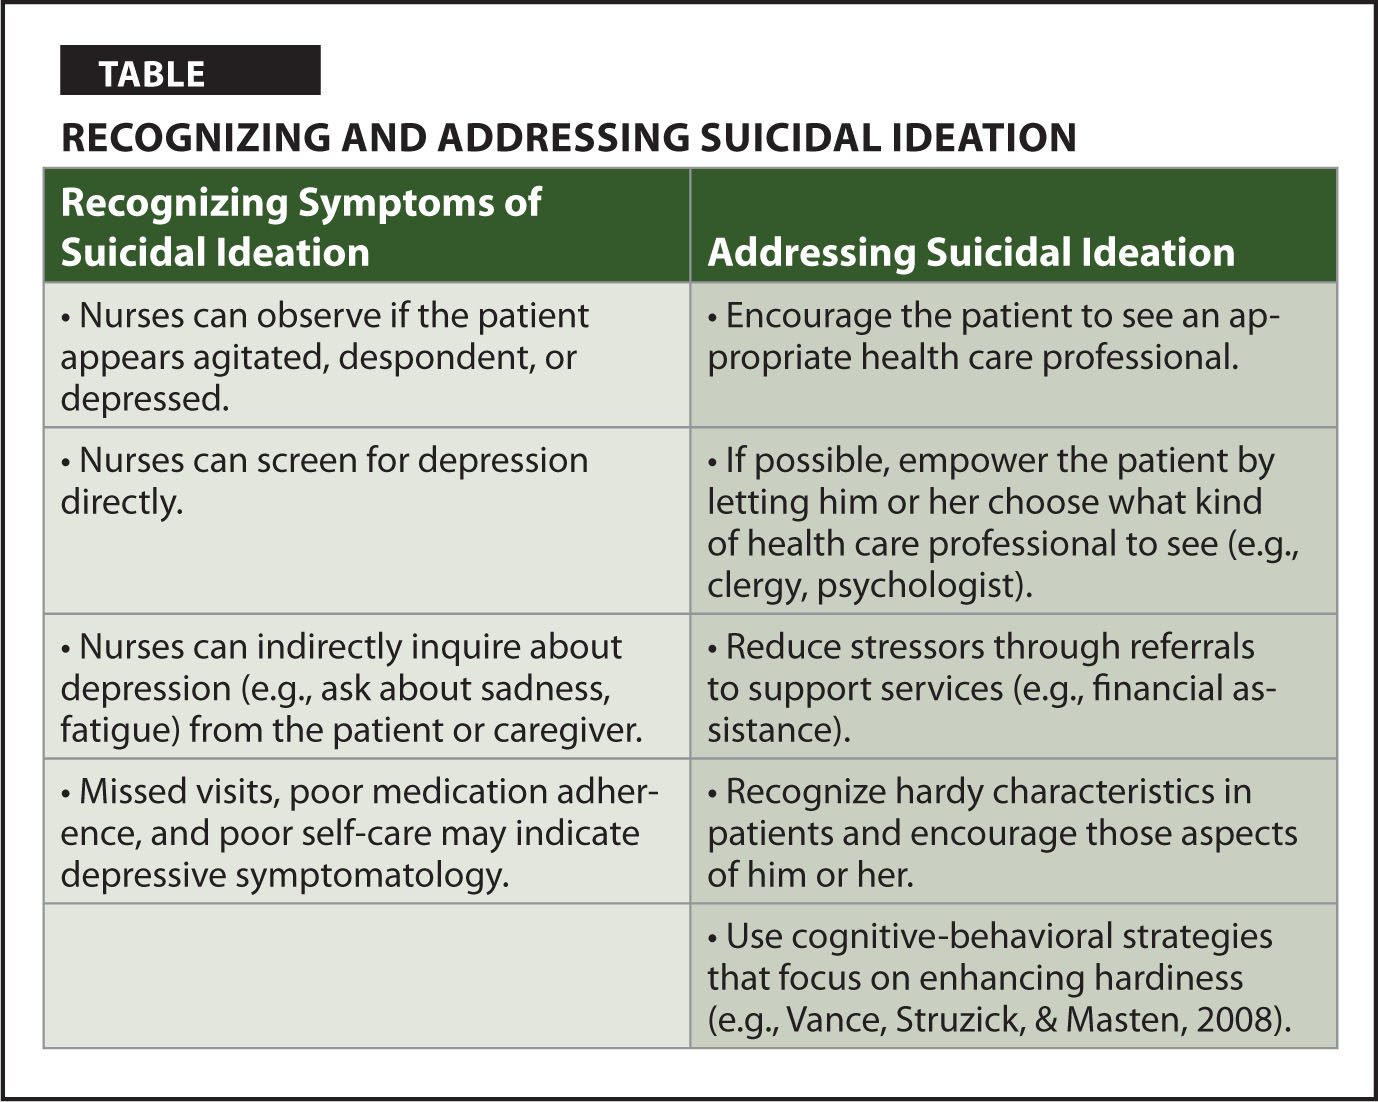 Recognizing and Addressing Suicidal Ideation